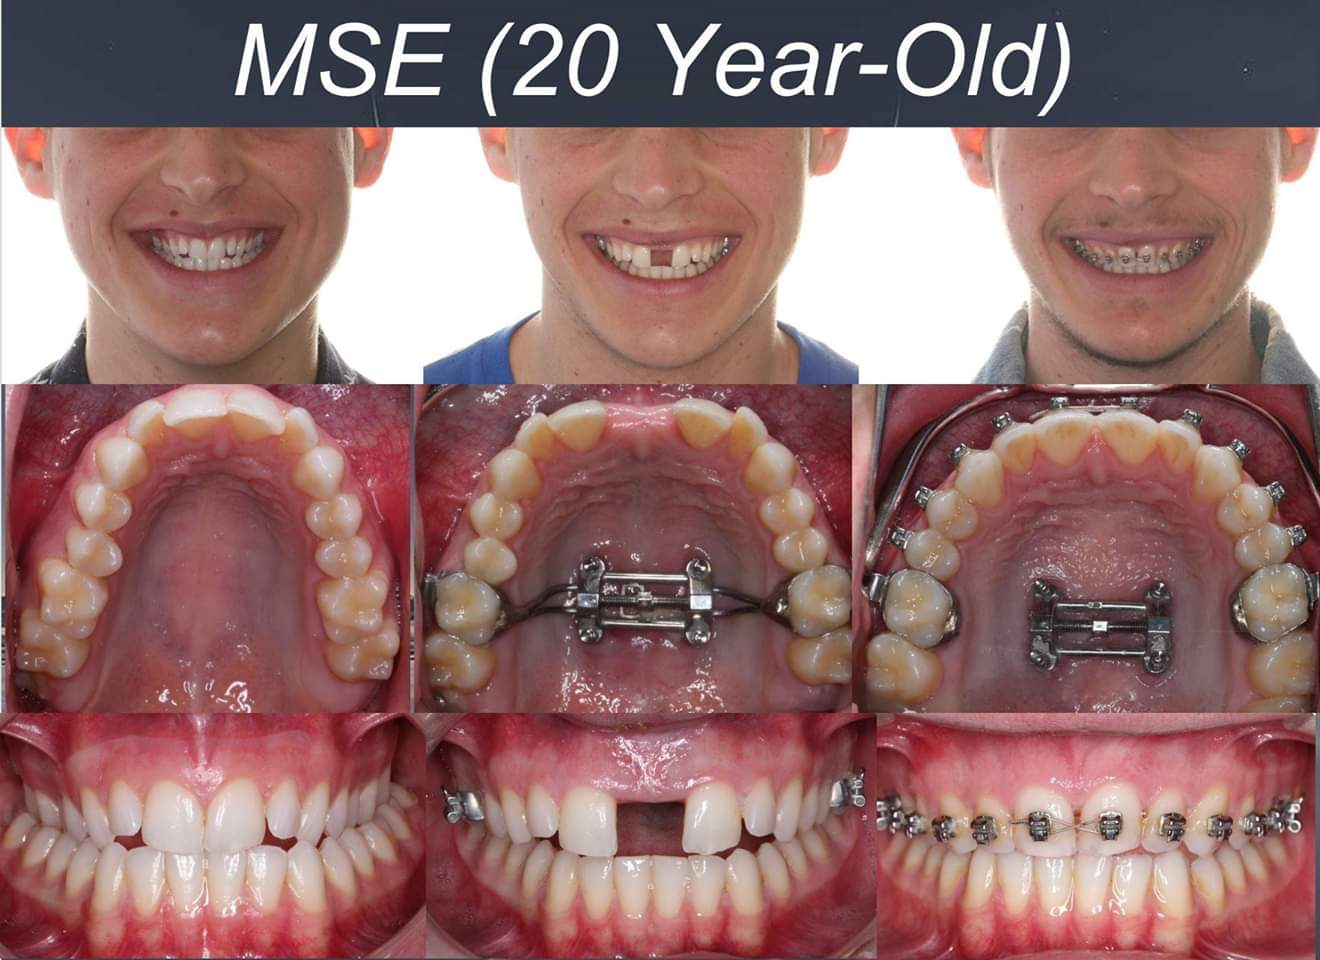 MSE Orthodontic Appliance bangalore